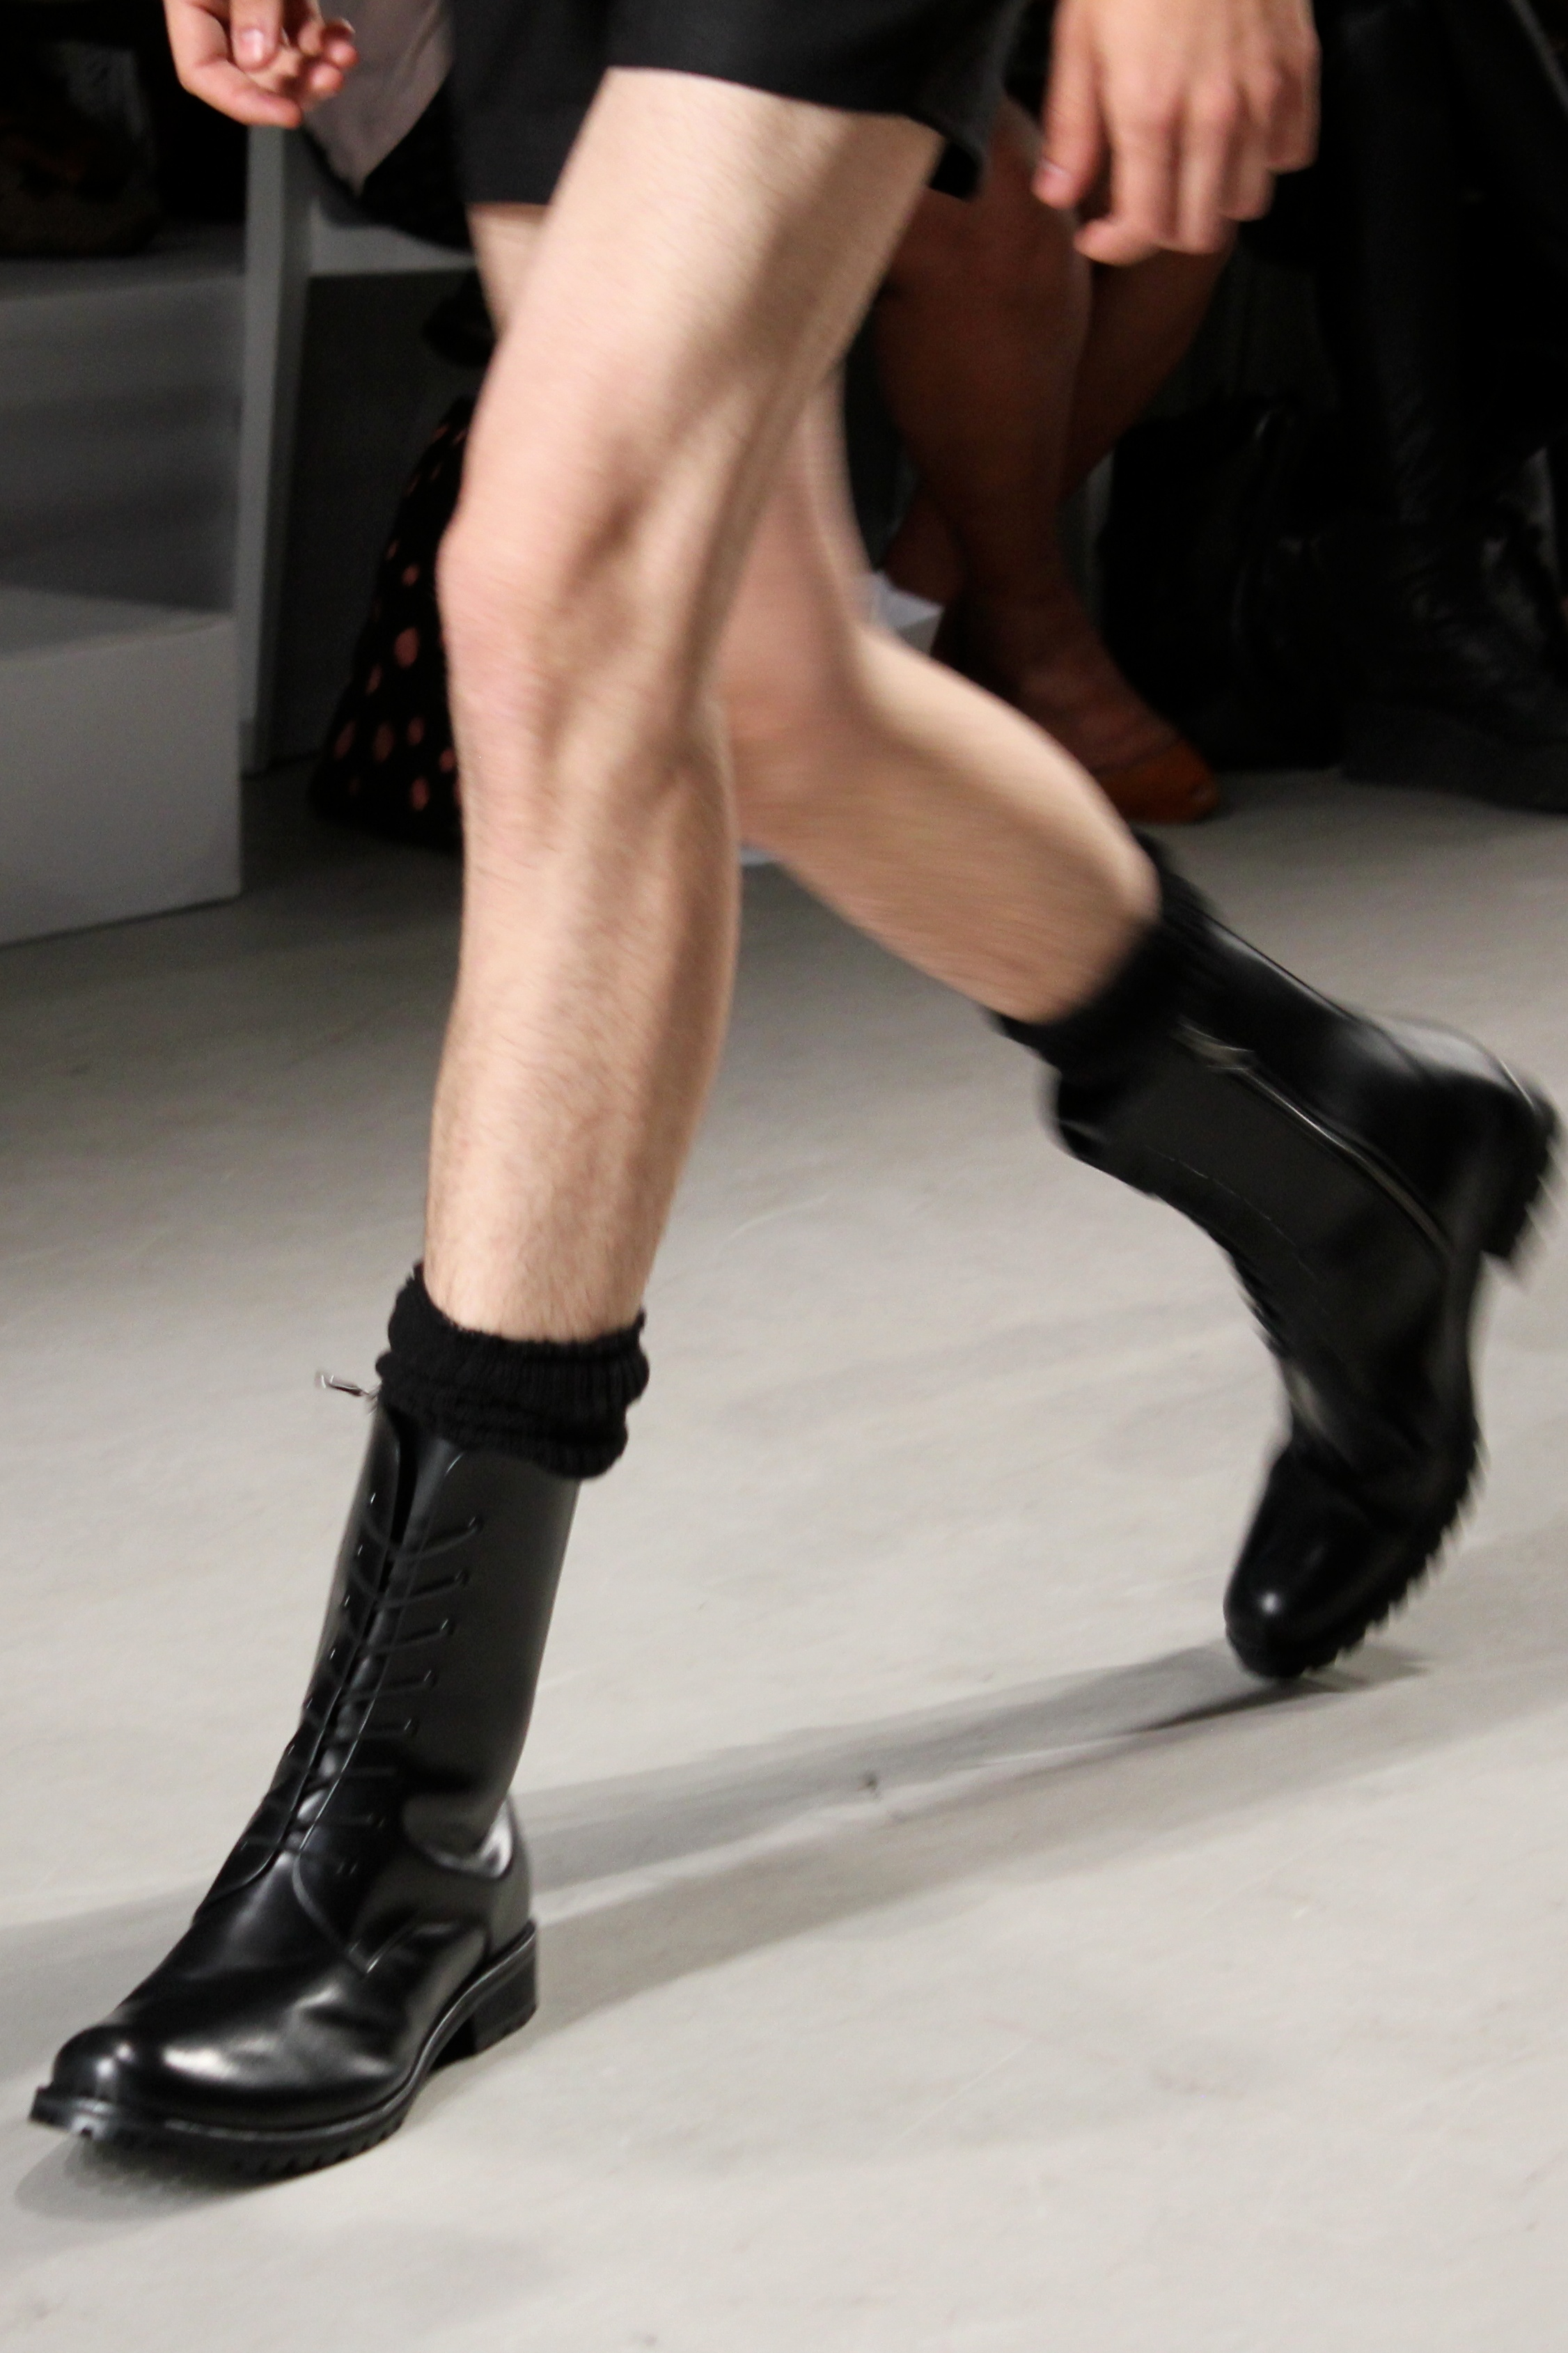 Black military-style boots